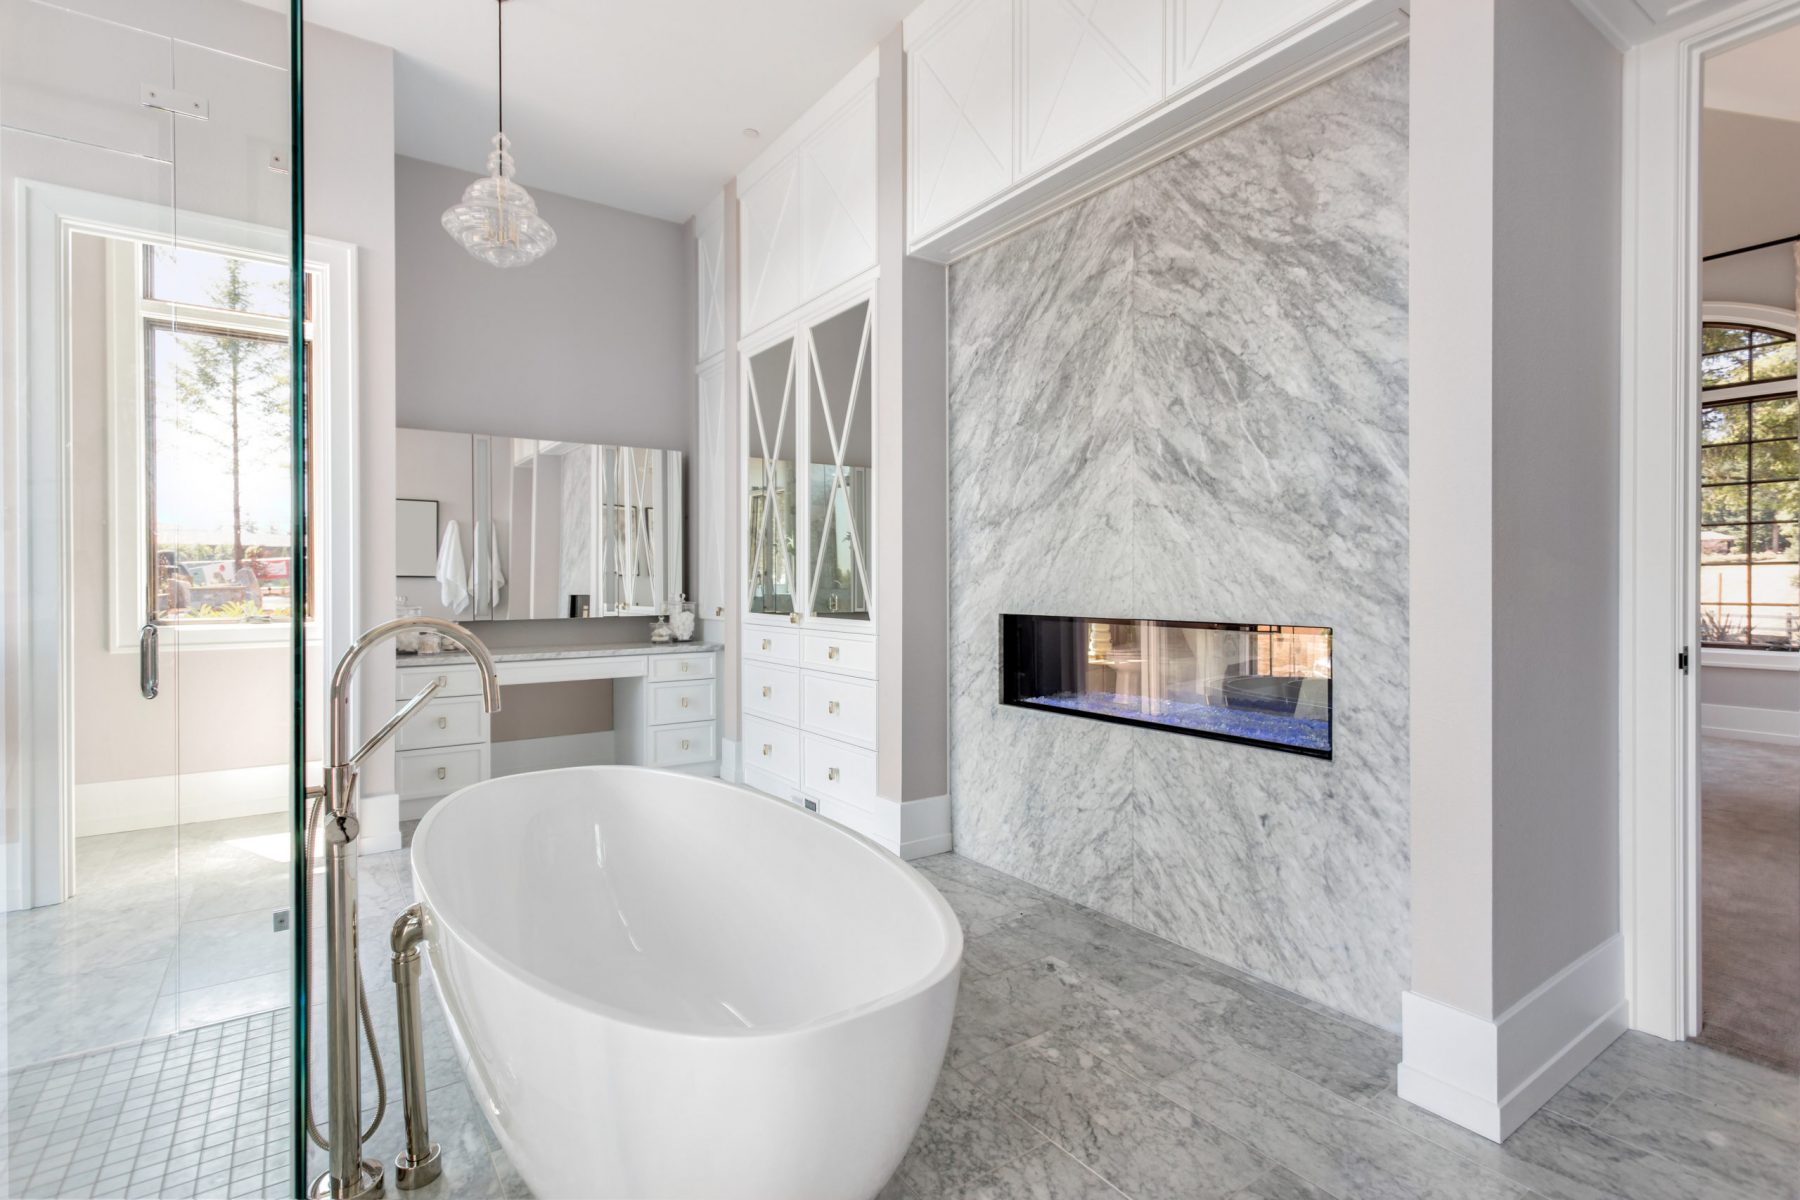 Luxurious Master Bathroom in New Home with Fireplace and Large Bathtub